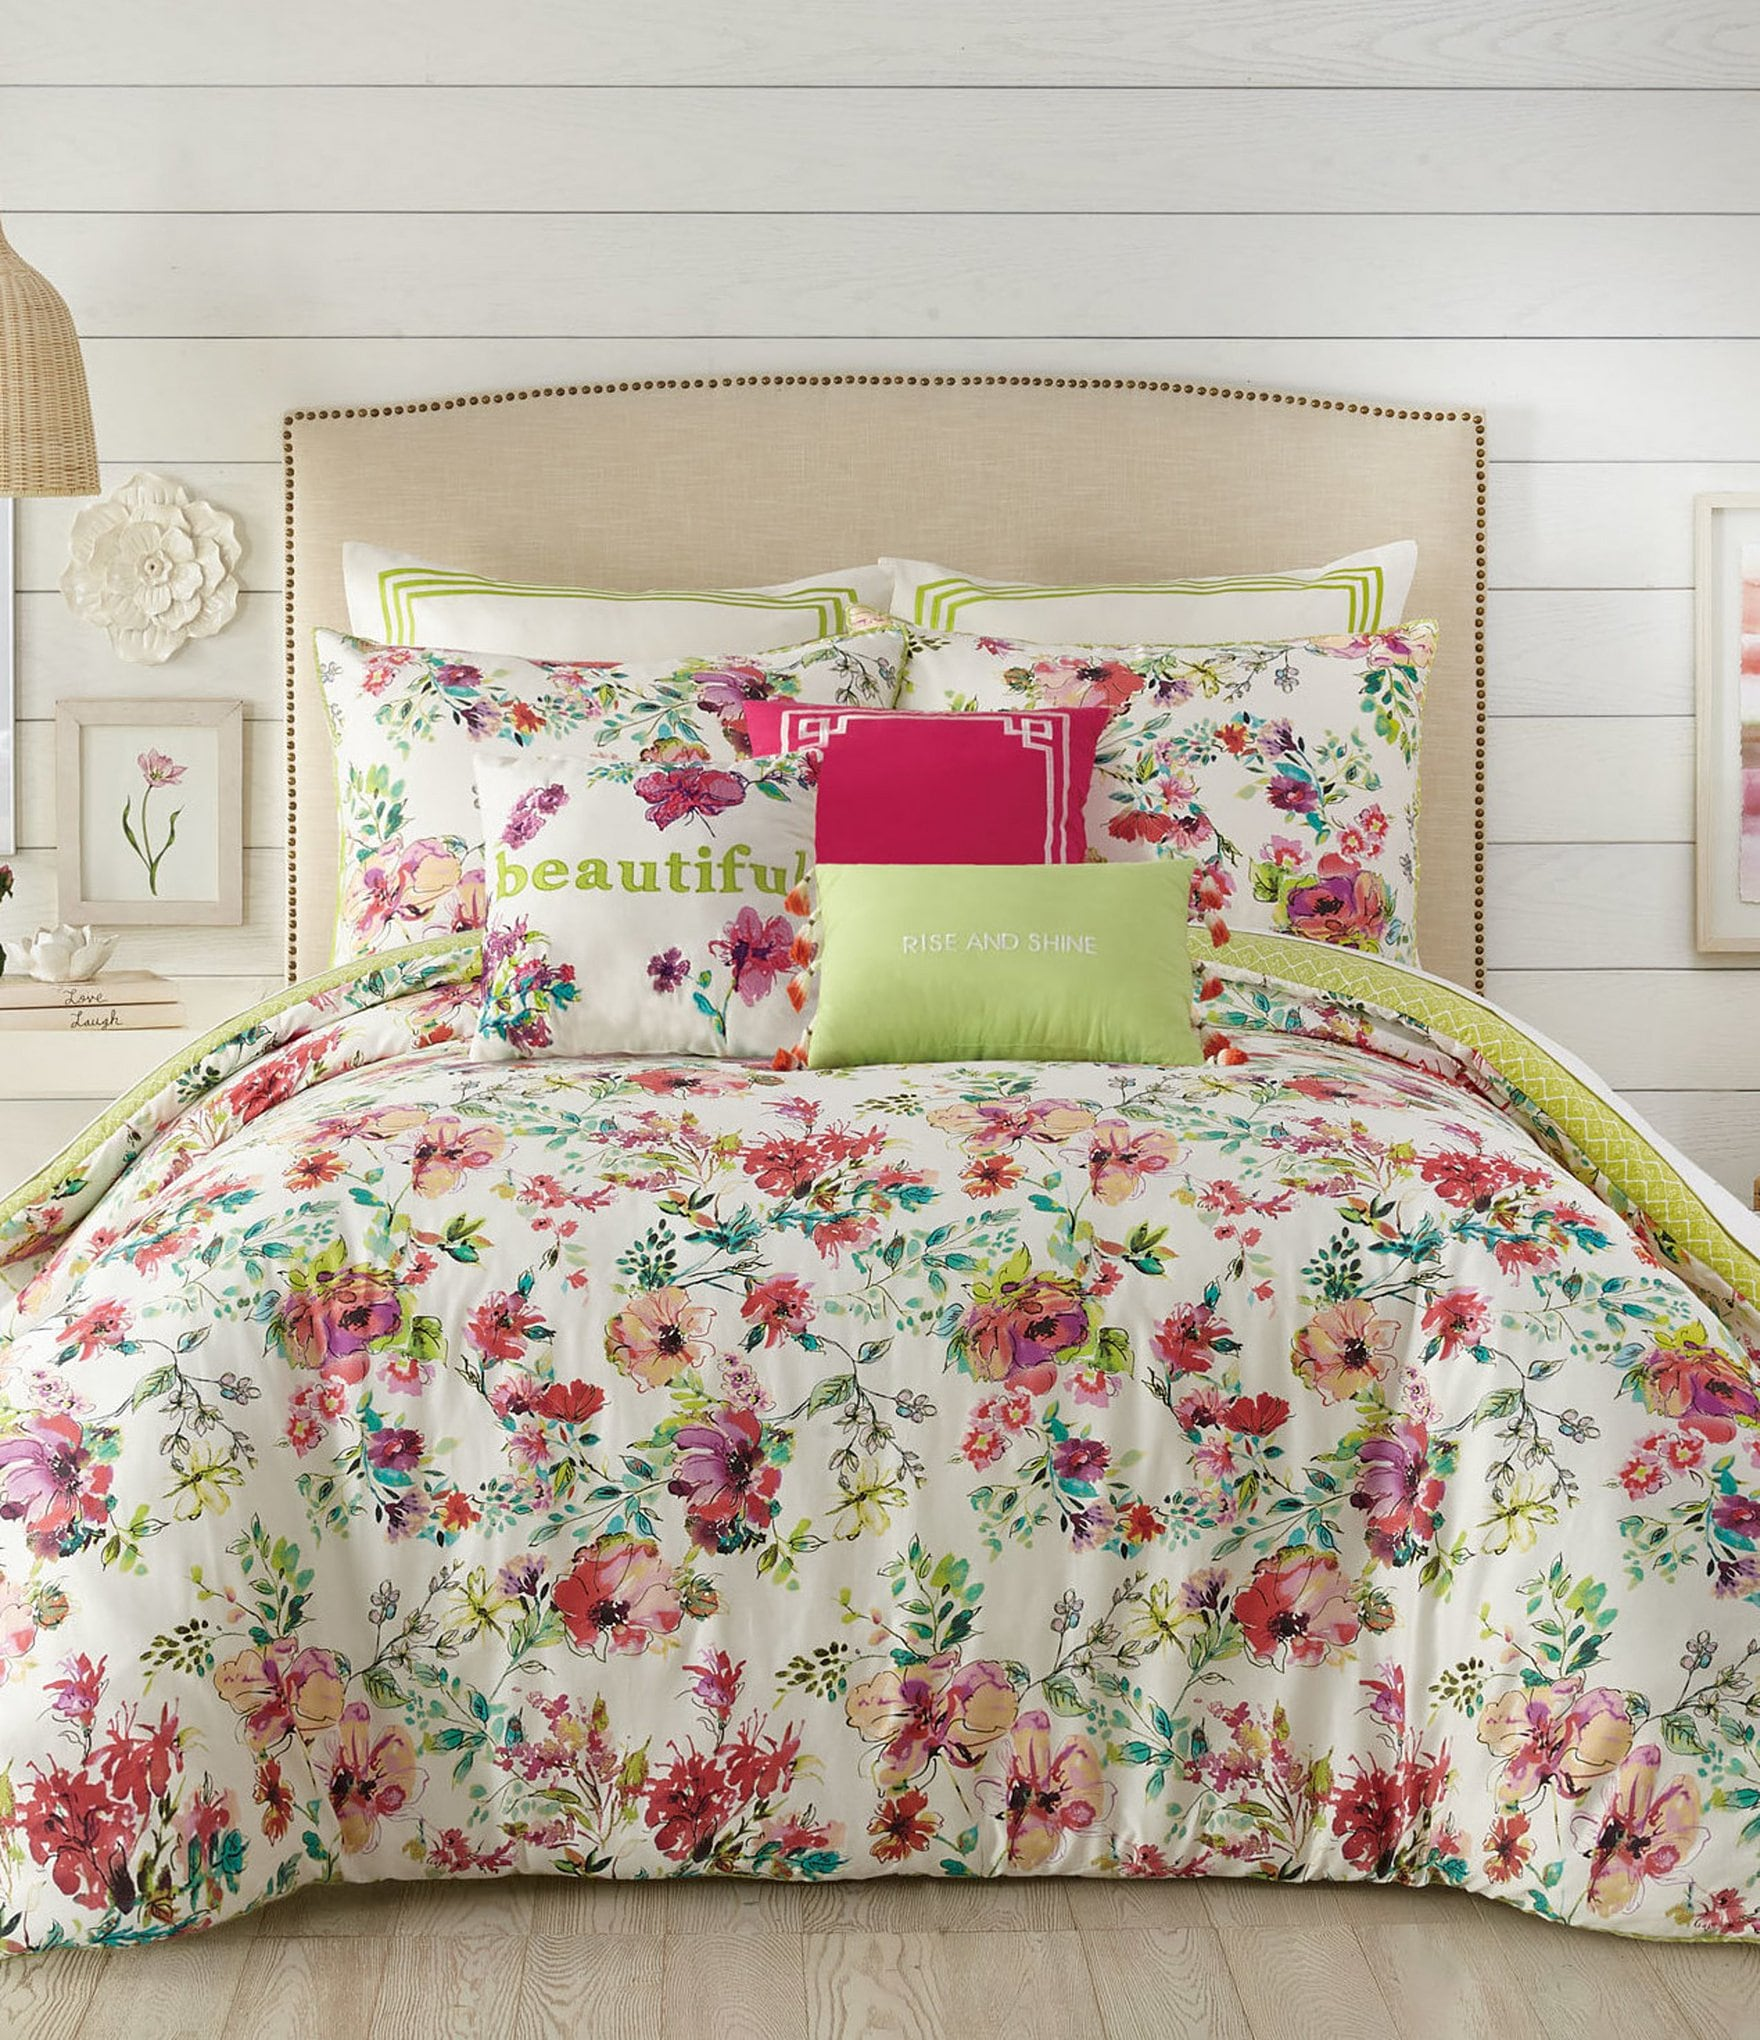 Jessica Simpson Watercolor Garden Comforter Mini Set